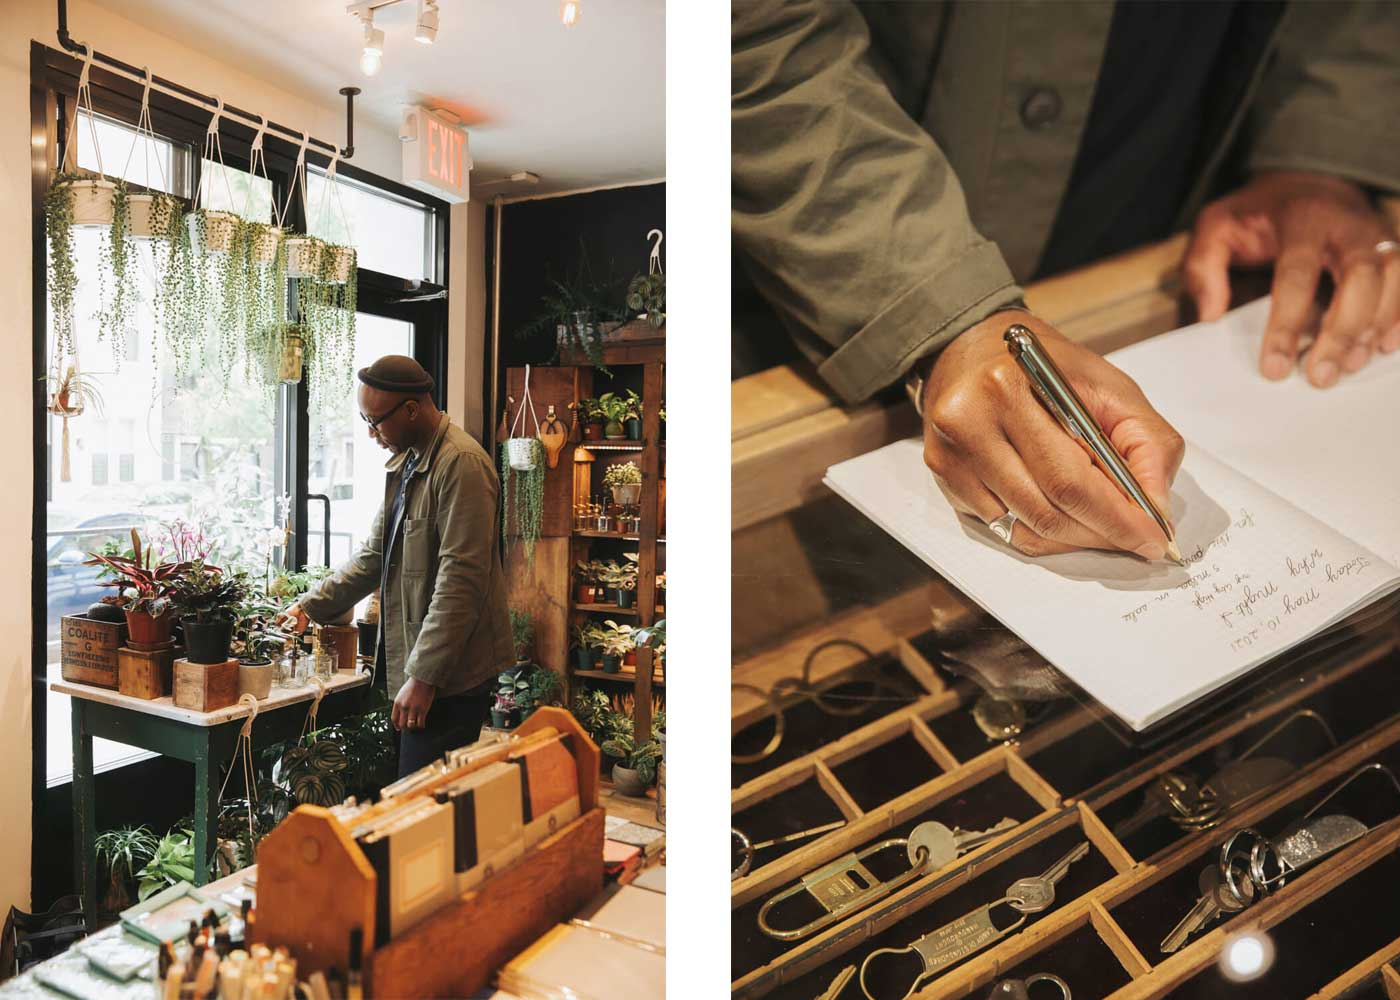 CORNERSHOP HIGHTIDE BROOKLYN NEW YORK interior shared with The Moss and Green window and glass display case